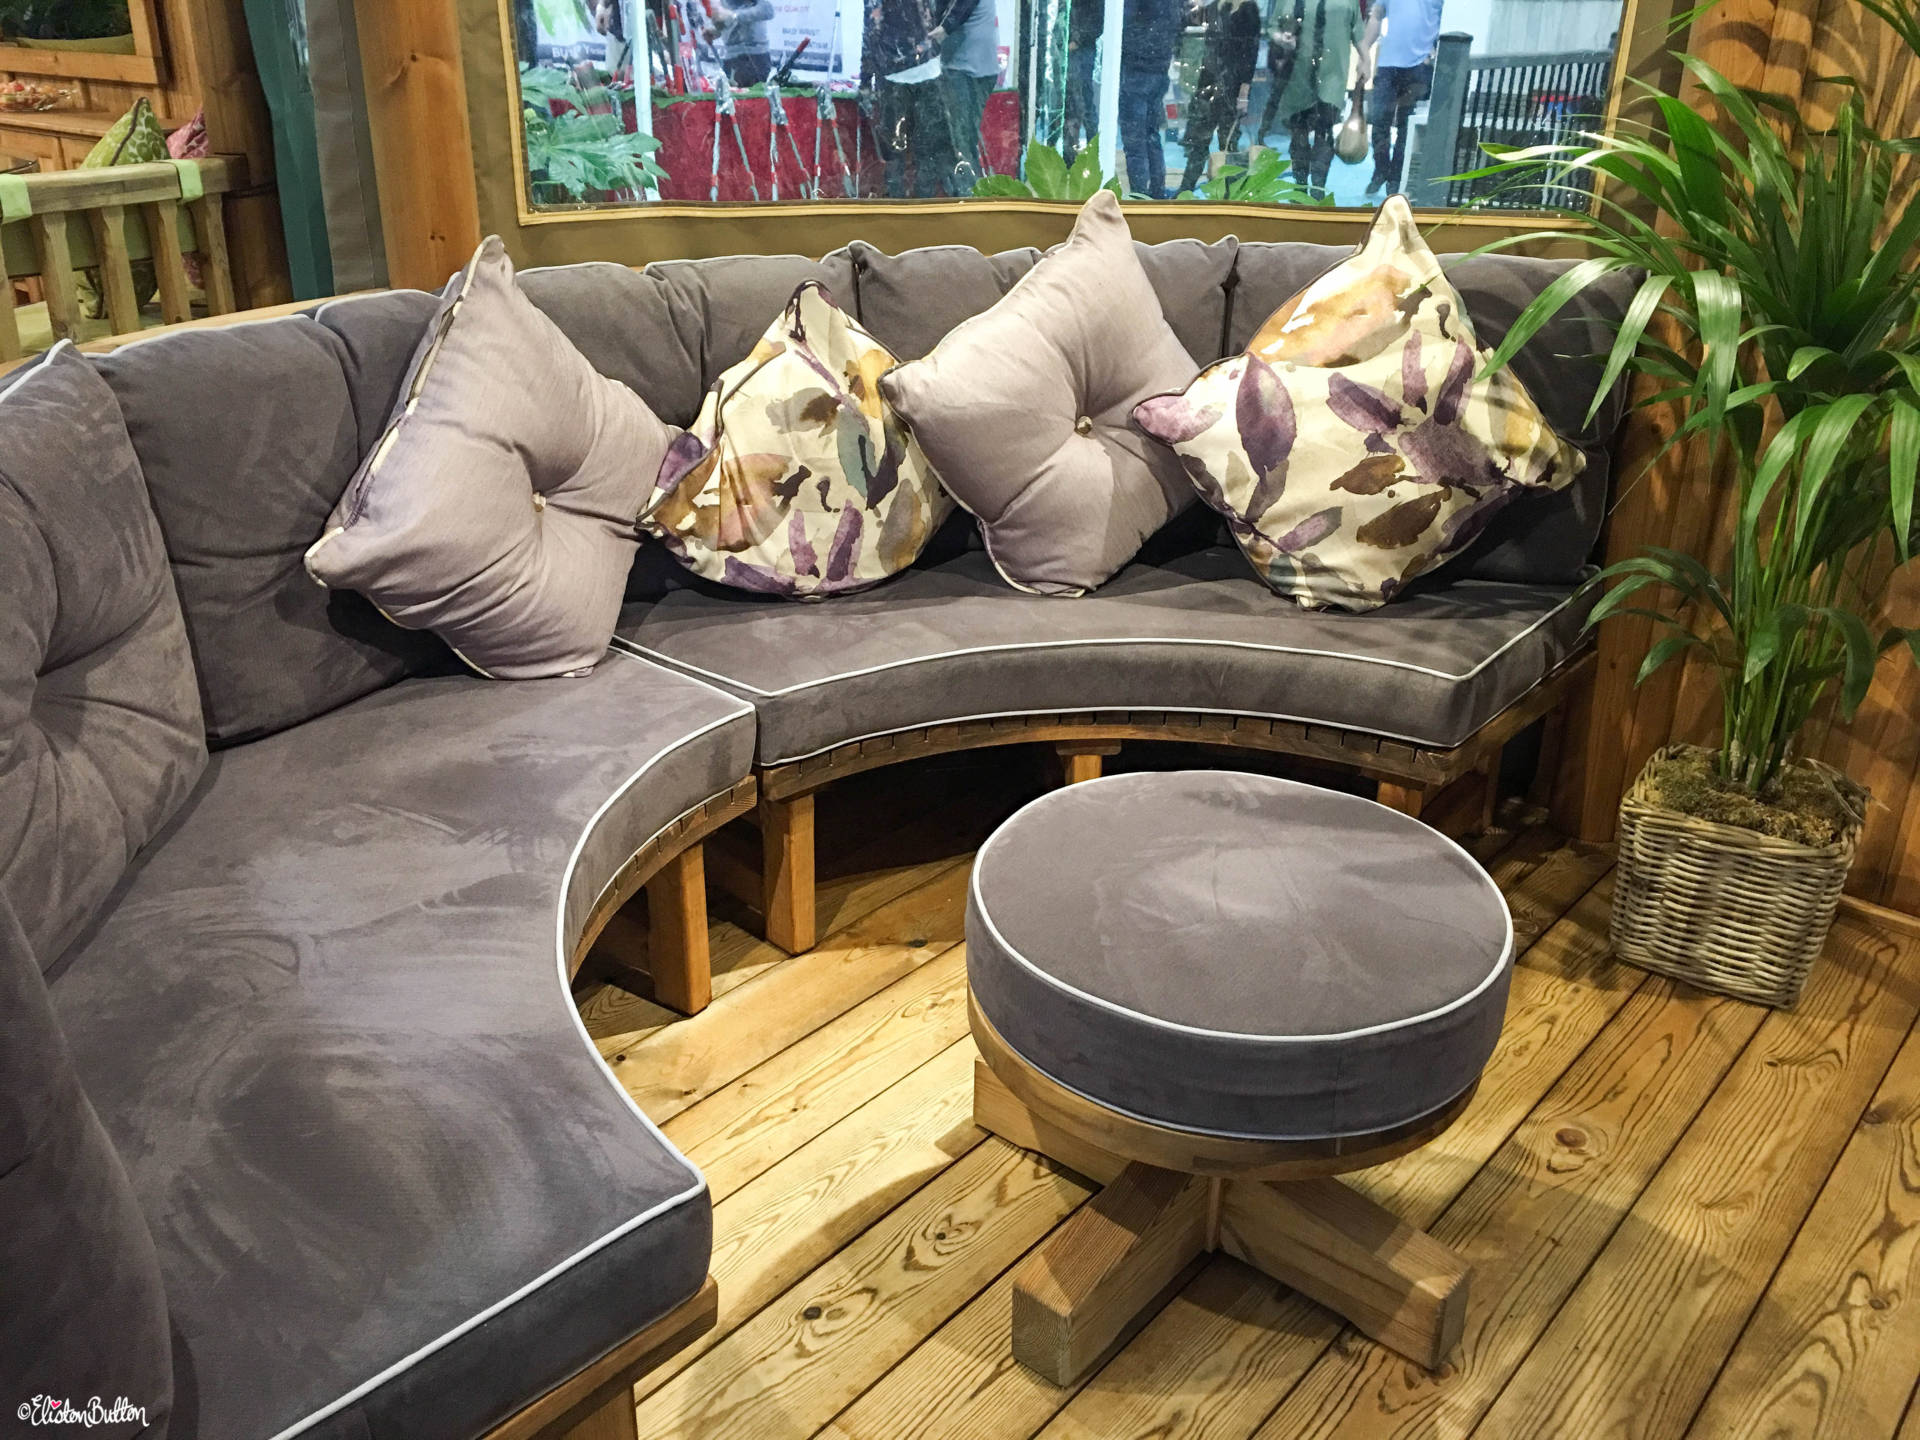 Beautiful Grey Plush Cushion Seating in a Breeze House Luxury Thatched Garden Room at Grand Designs Live 2017 with Eliston Button - Grand Designs Live 2017 – Part Two at www.elistonbutton.com - Eliston Button - That Crafty Kid – Art, Design, Craft & Adventure.